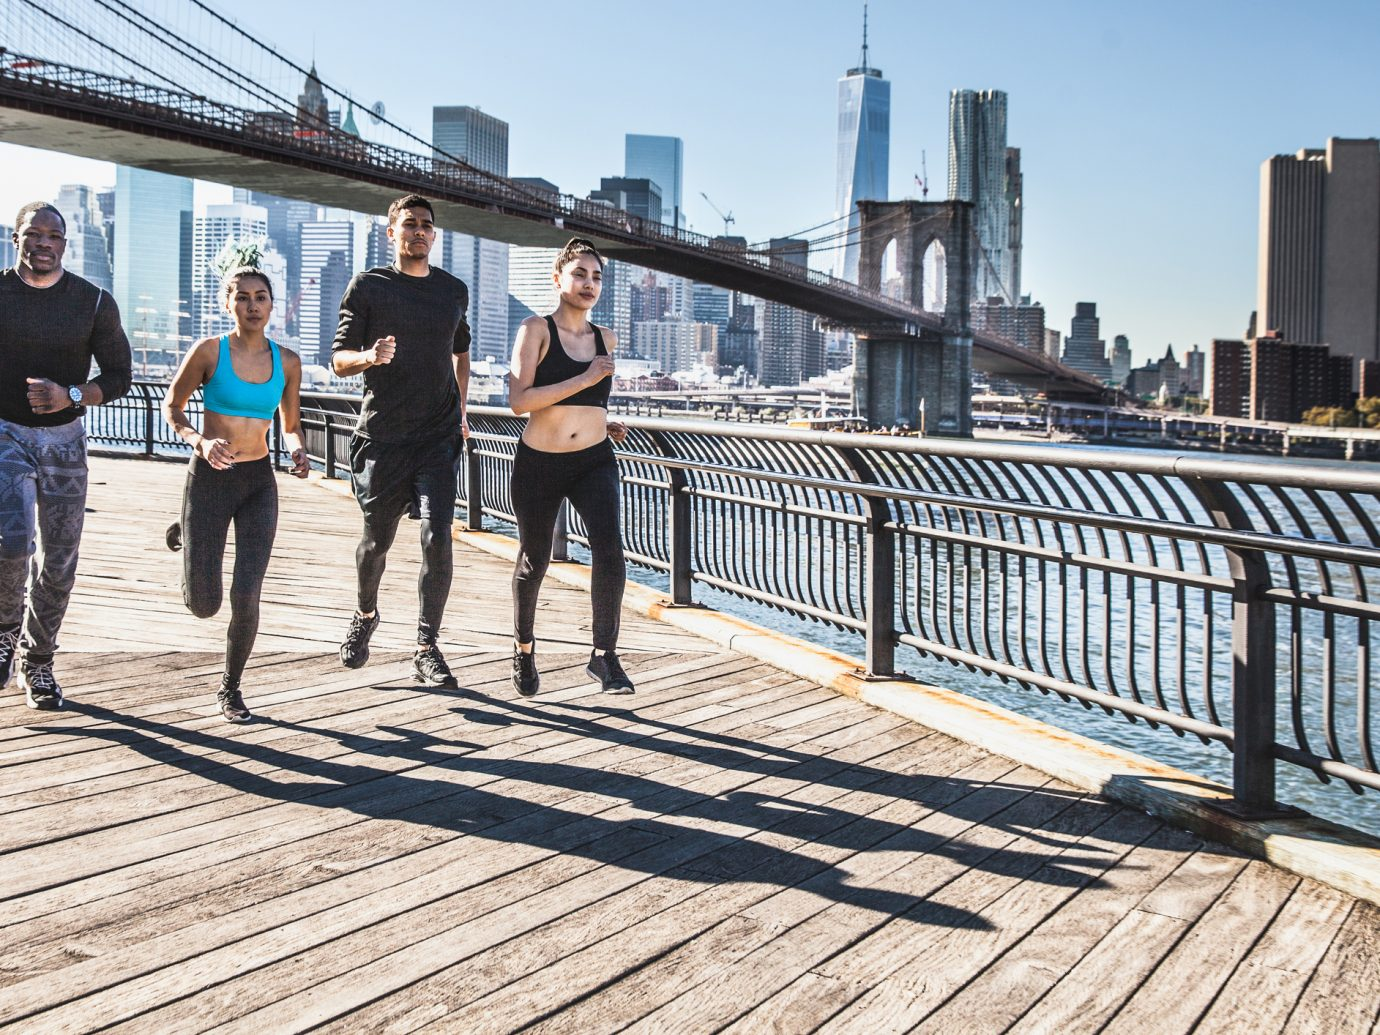 Group of healthy mixed race people running in DUMBO - New York City - USA. They are running in the city streets wearing professional sport clothes.